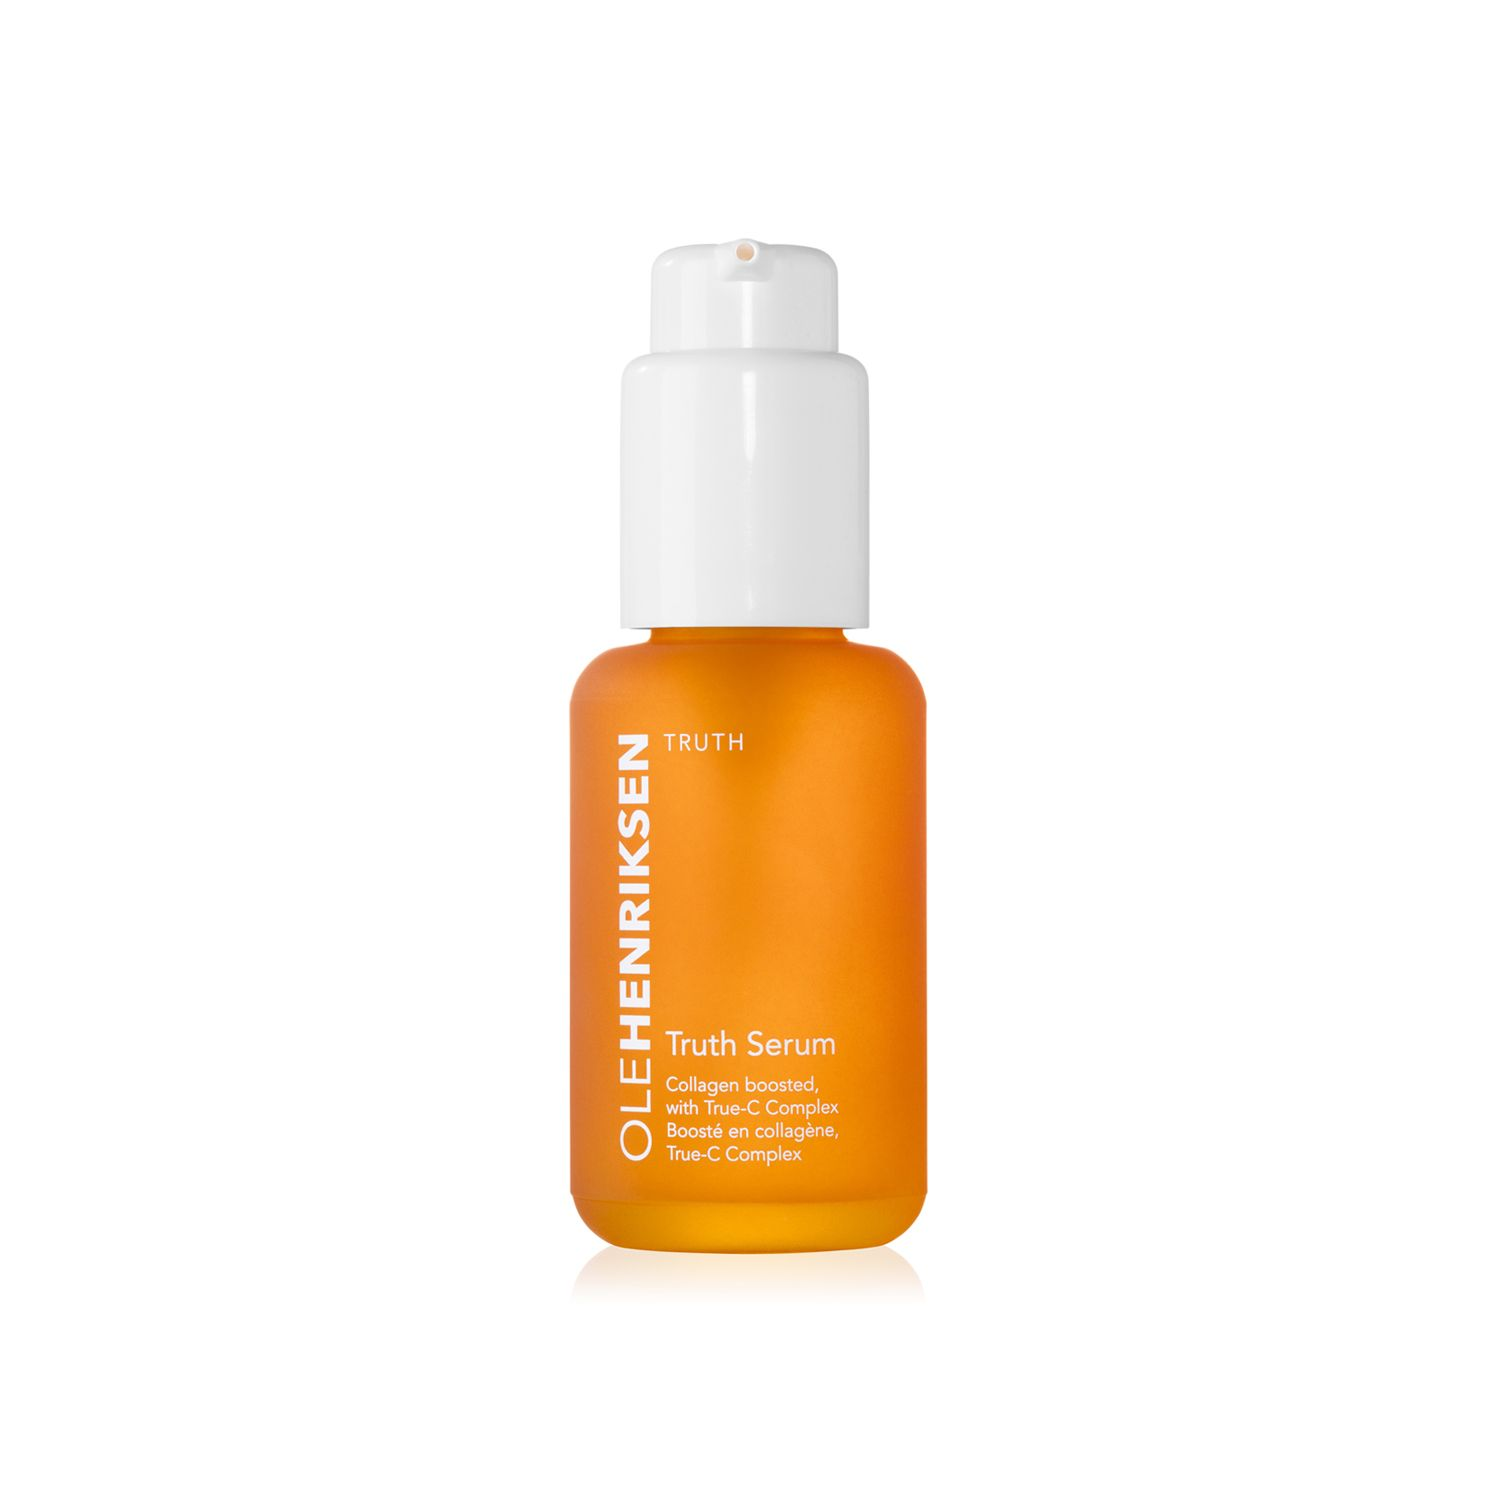 ole-henriksen-truth-serum